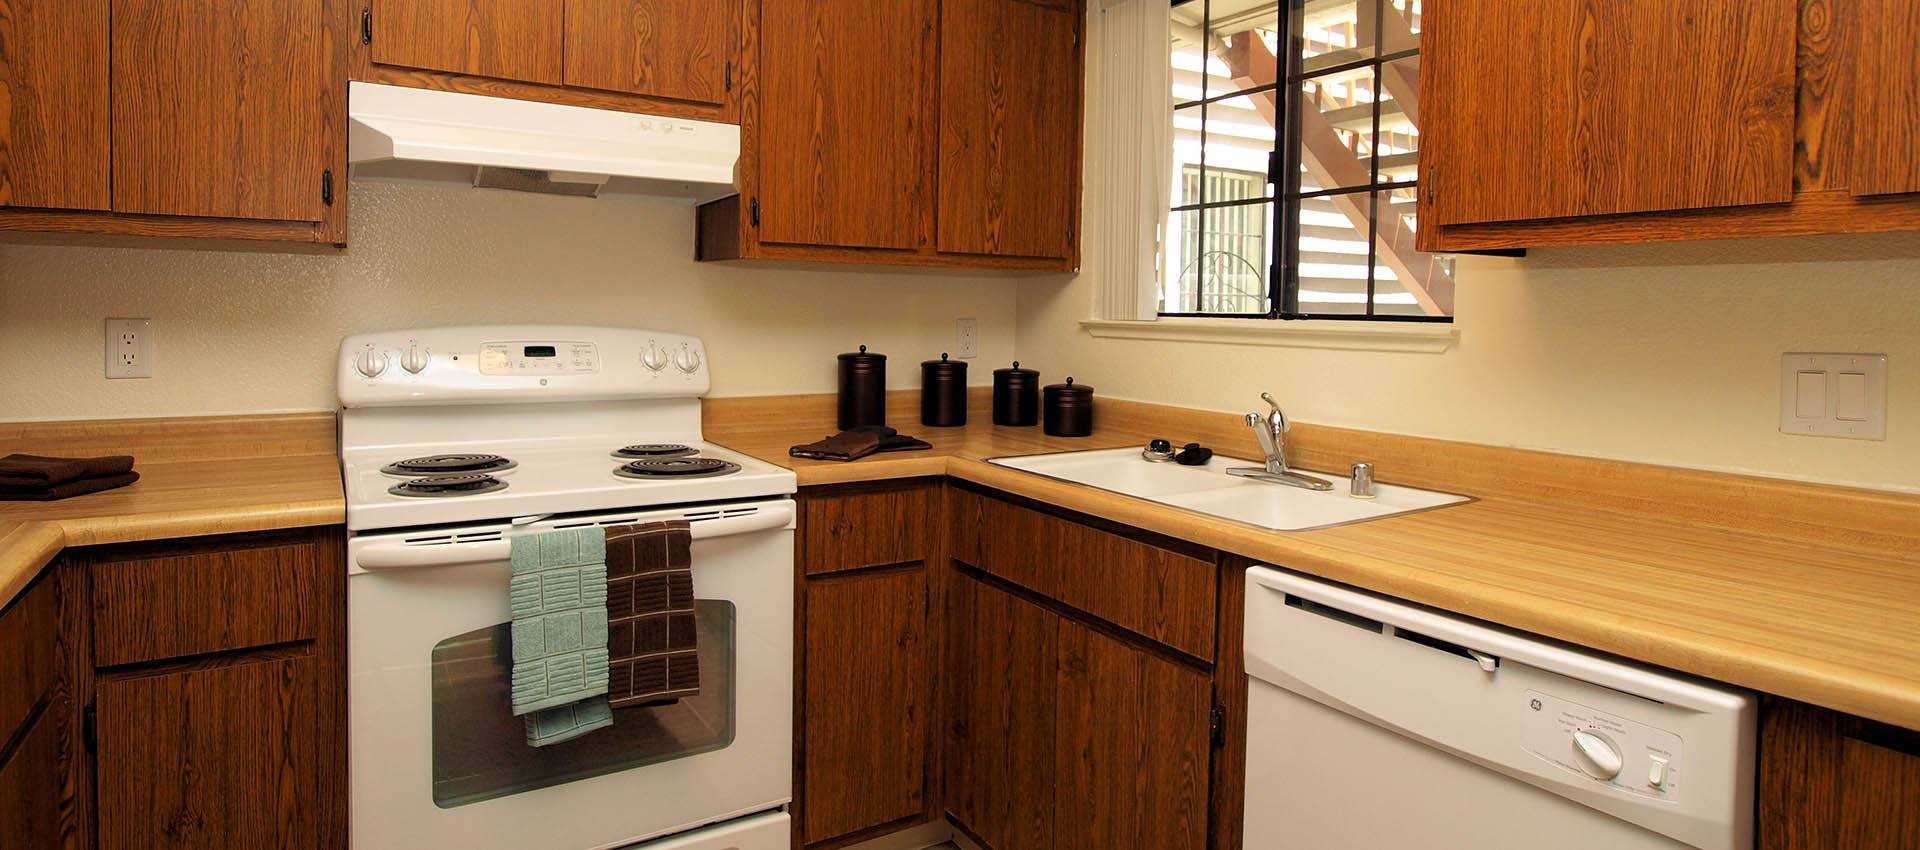 Standard Kitchen at Hidden Lake Condominium Rentals in Sacramento, CA